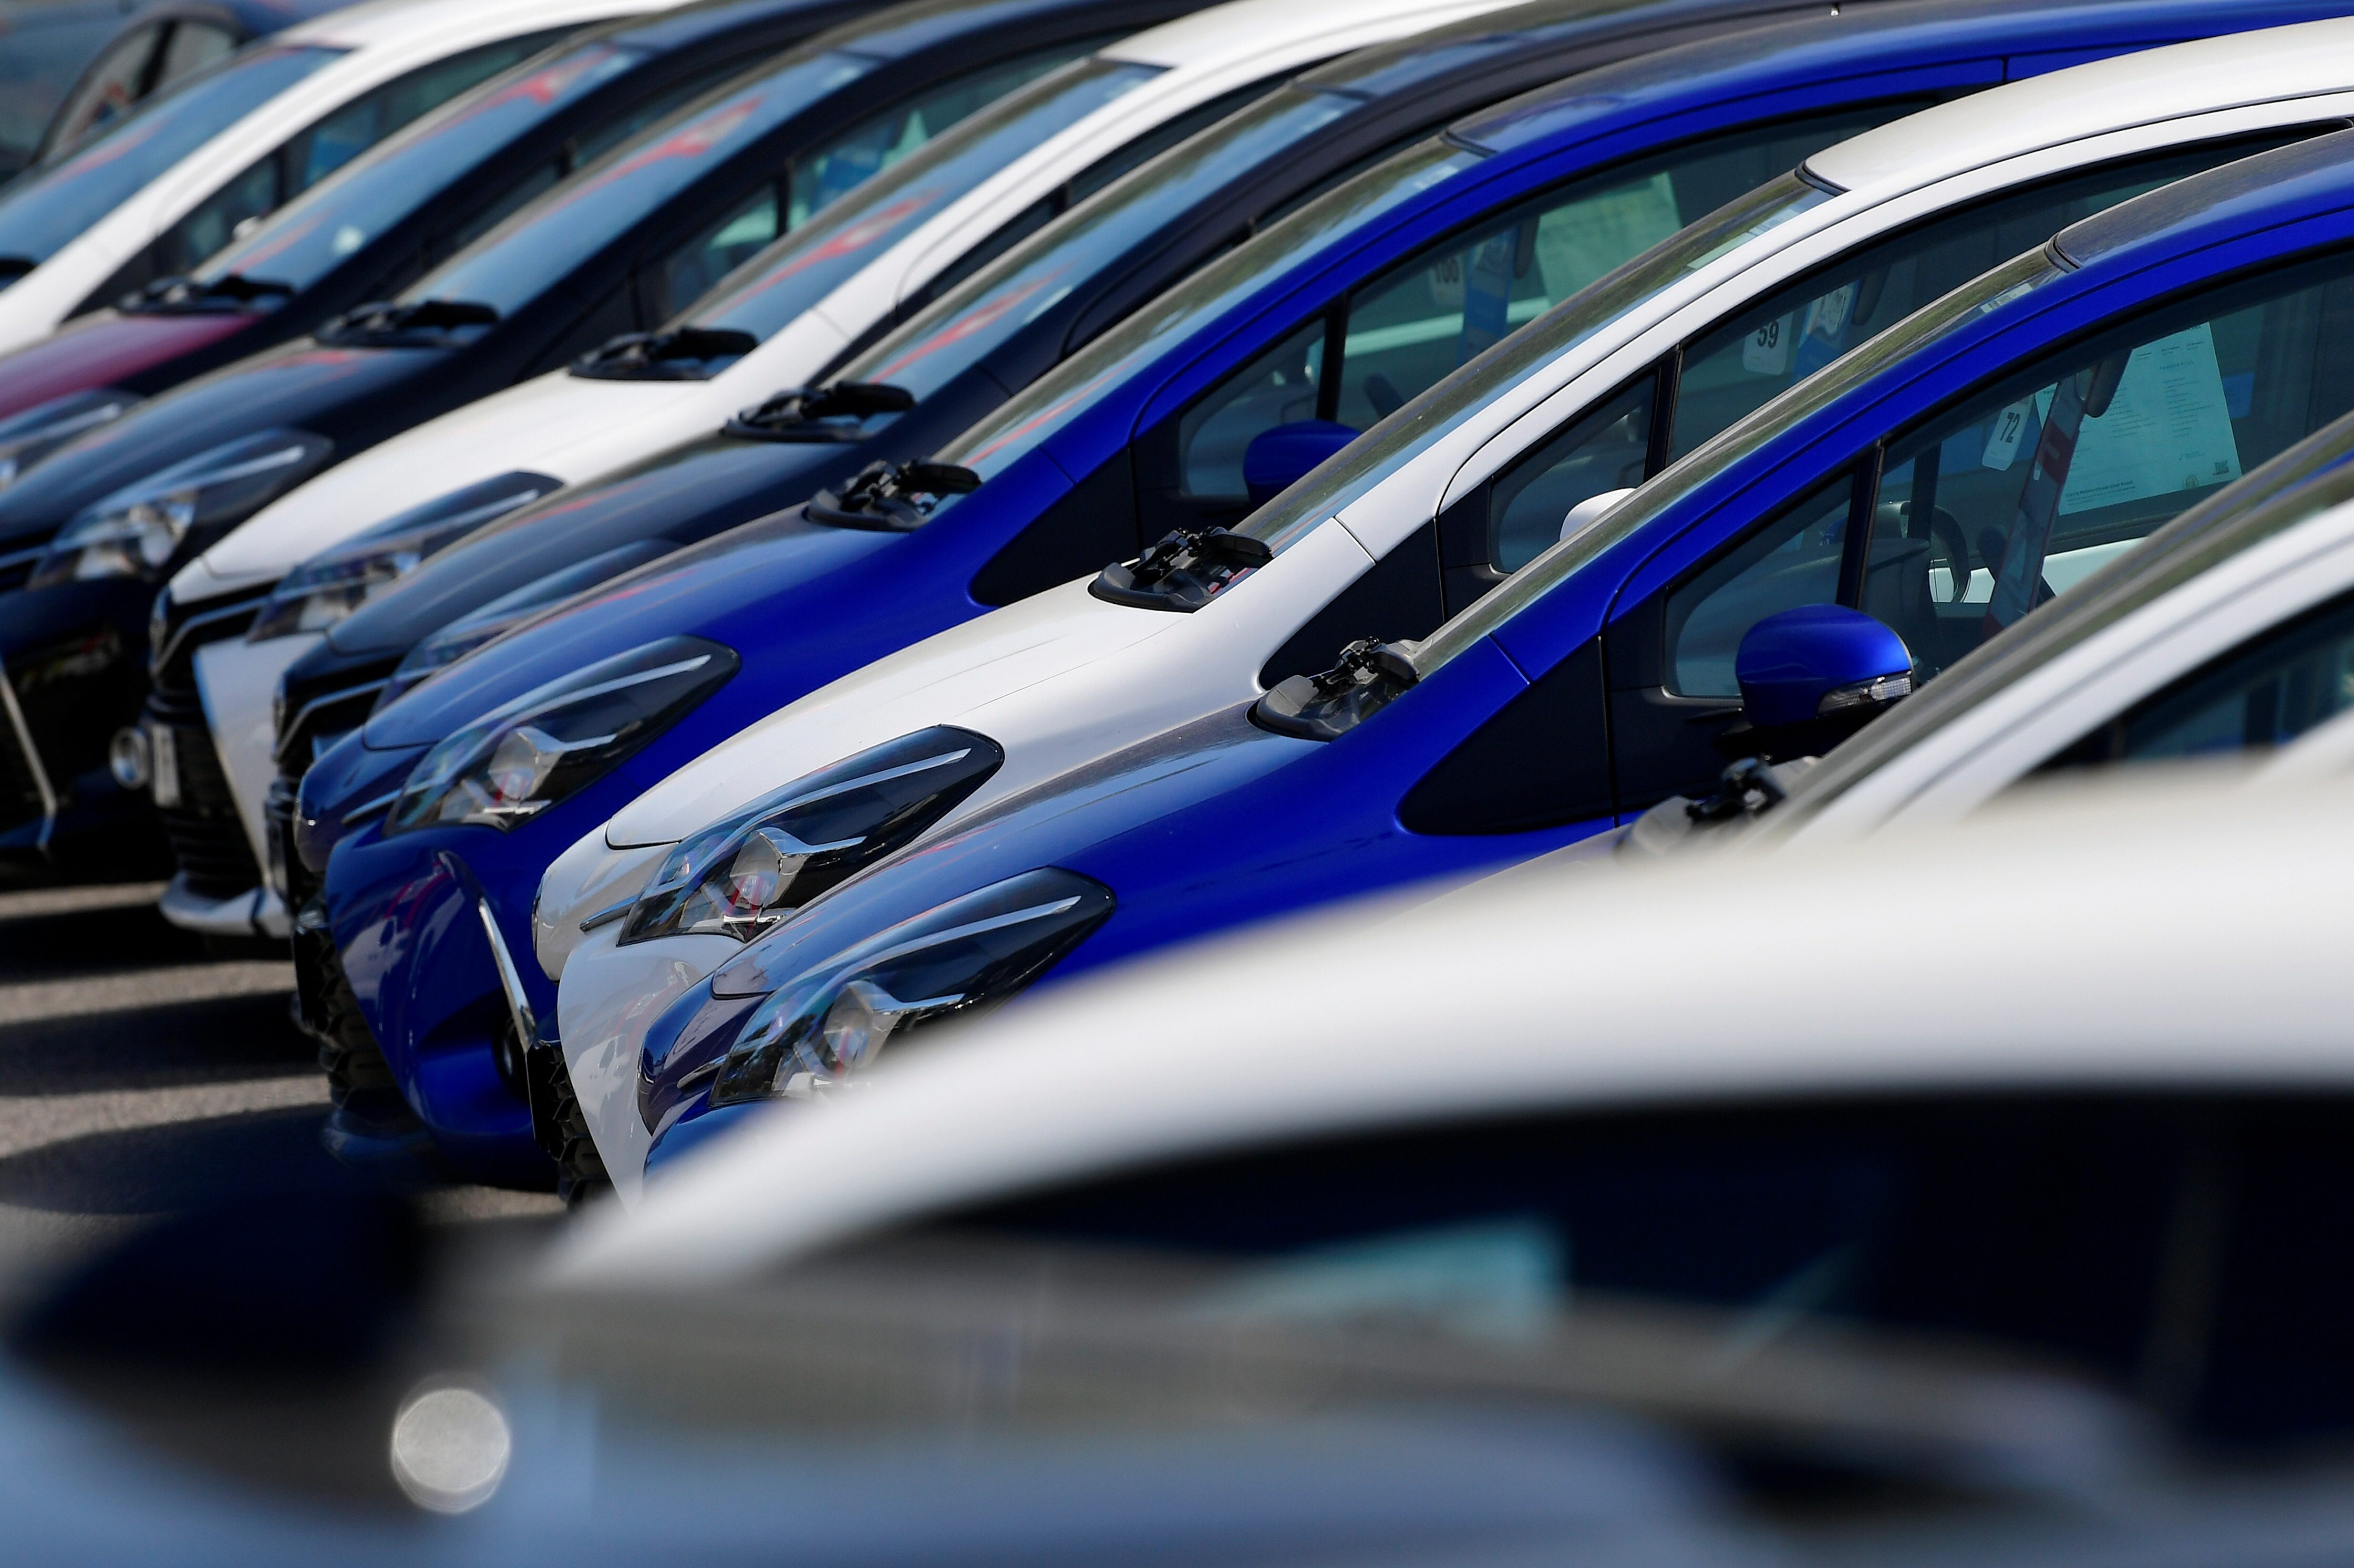 Toyota cars at a dealership in West London are pictured as it remains closed during lockdown following the outbreak of the coronavirus disease (COVID-19), London, Britain, May 5, 2020. REUTERS/Toby Melville